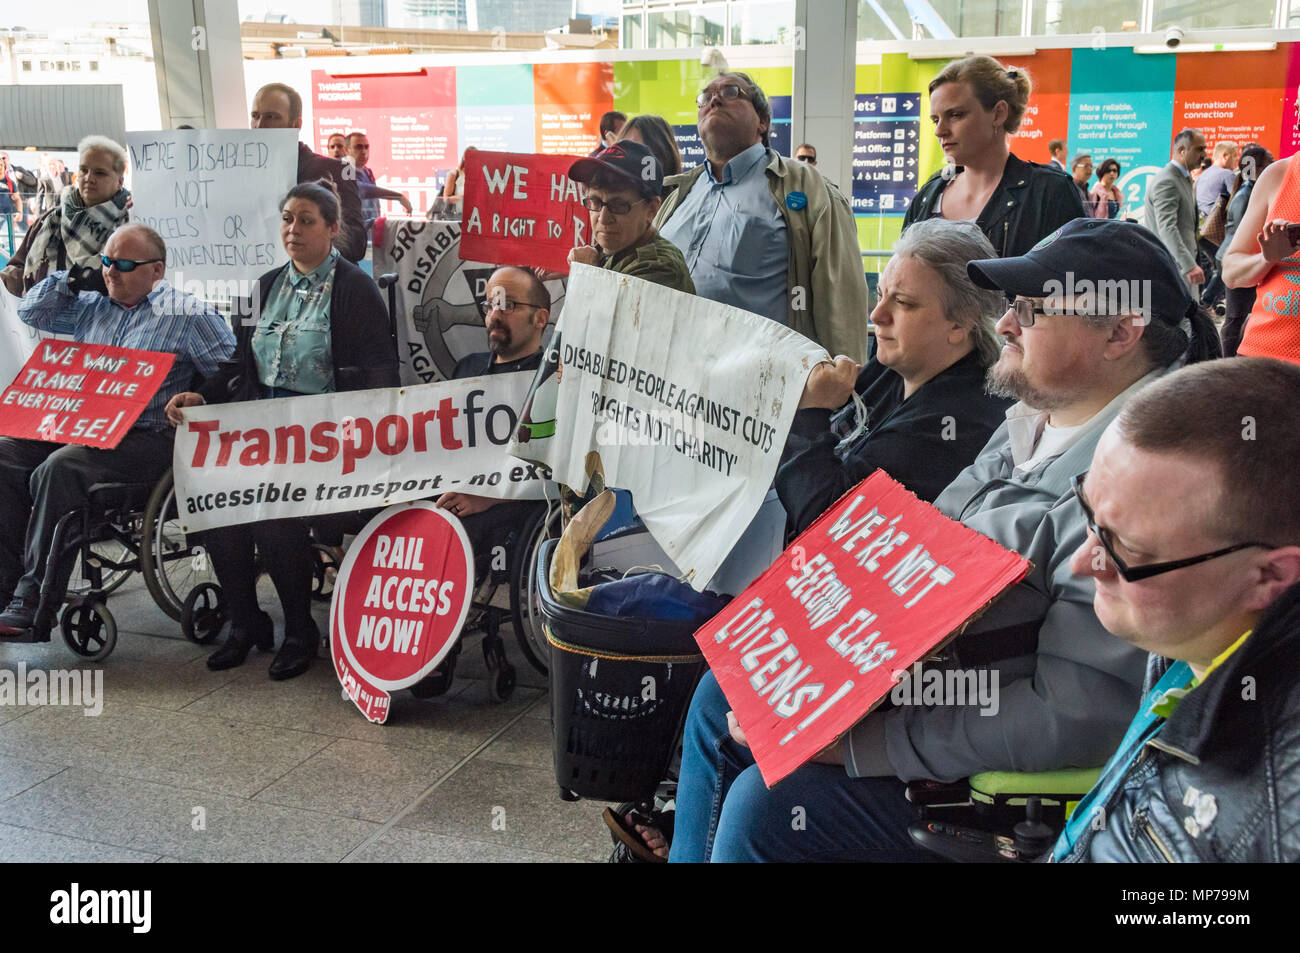 London, UK. 21st May 2018. Protesters in a 'People's Picket' by disabled rail passengers from Disabled People Against Cuts along with the Association of British Commuters and RMT members outside London Bridge station. GTR uses a staff training guide in which they are dehumanised as 'PRM's  and staff are instructed to leave wheelchair users on the platform, even when they have arranged and pre-booked a journey. Today's timetable changes include a reduced stopping time at stations. Credit: Peter Marshall/Alamy Live News - Stock Image